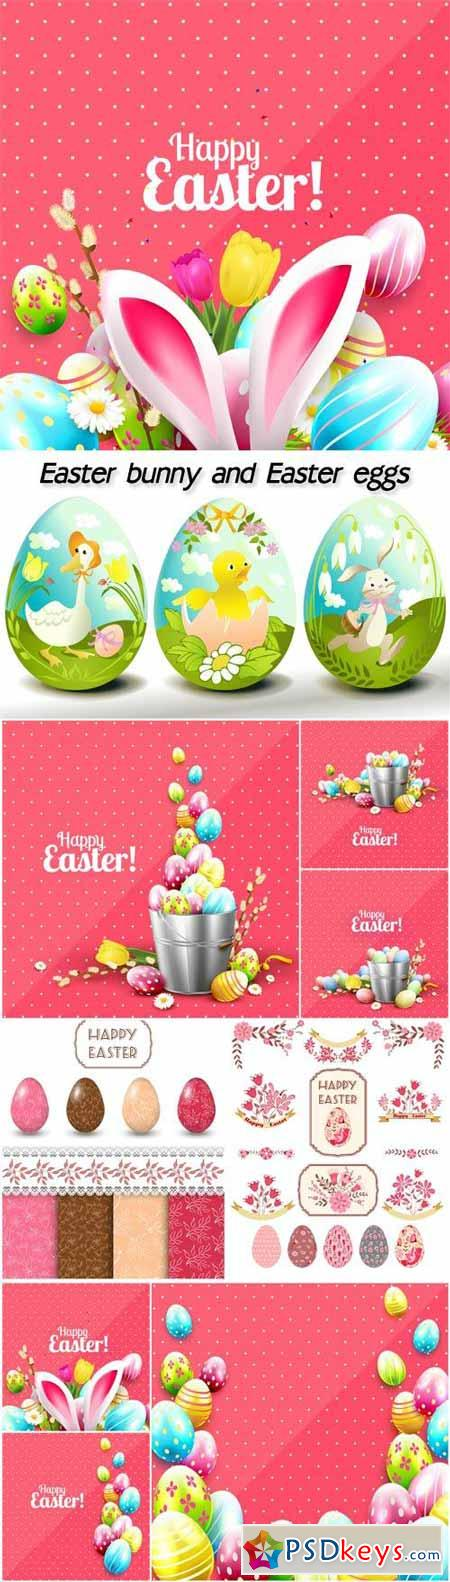 Easter bunny and Easter eggs vector backgrounds